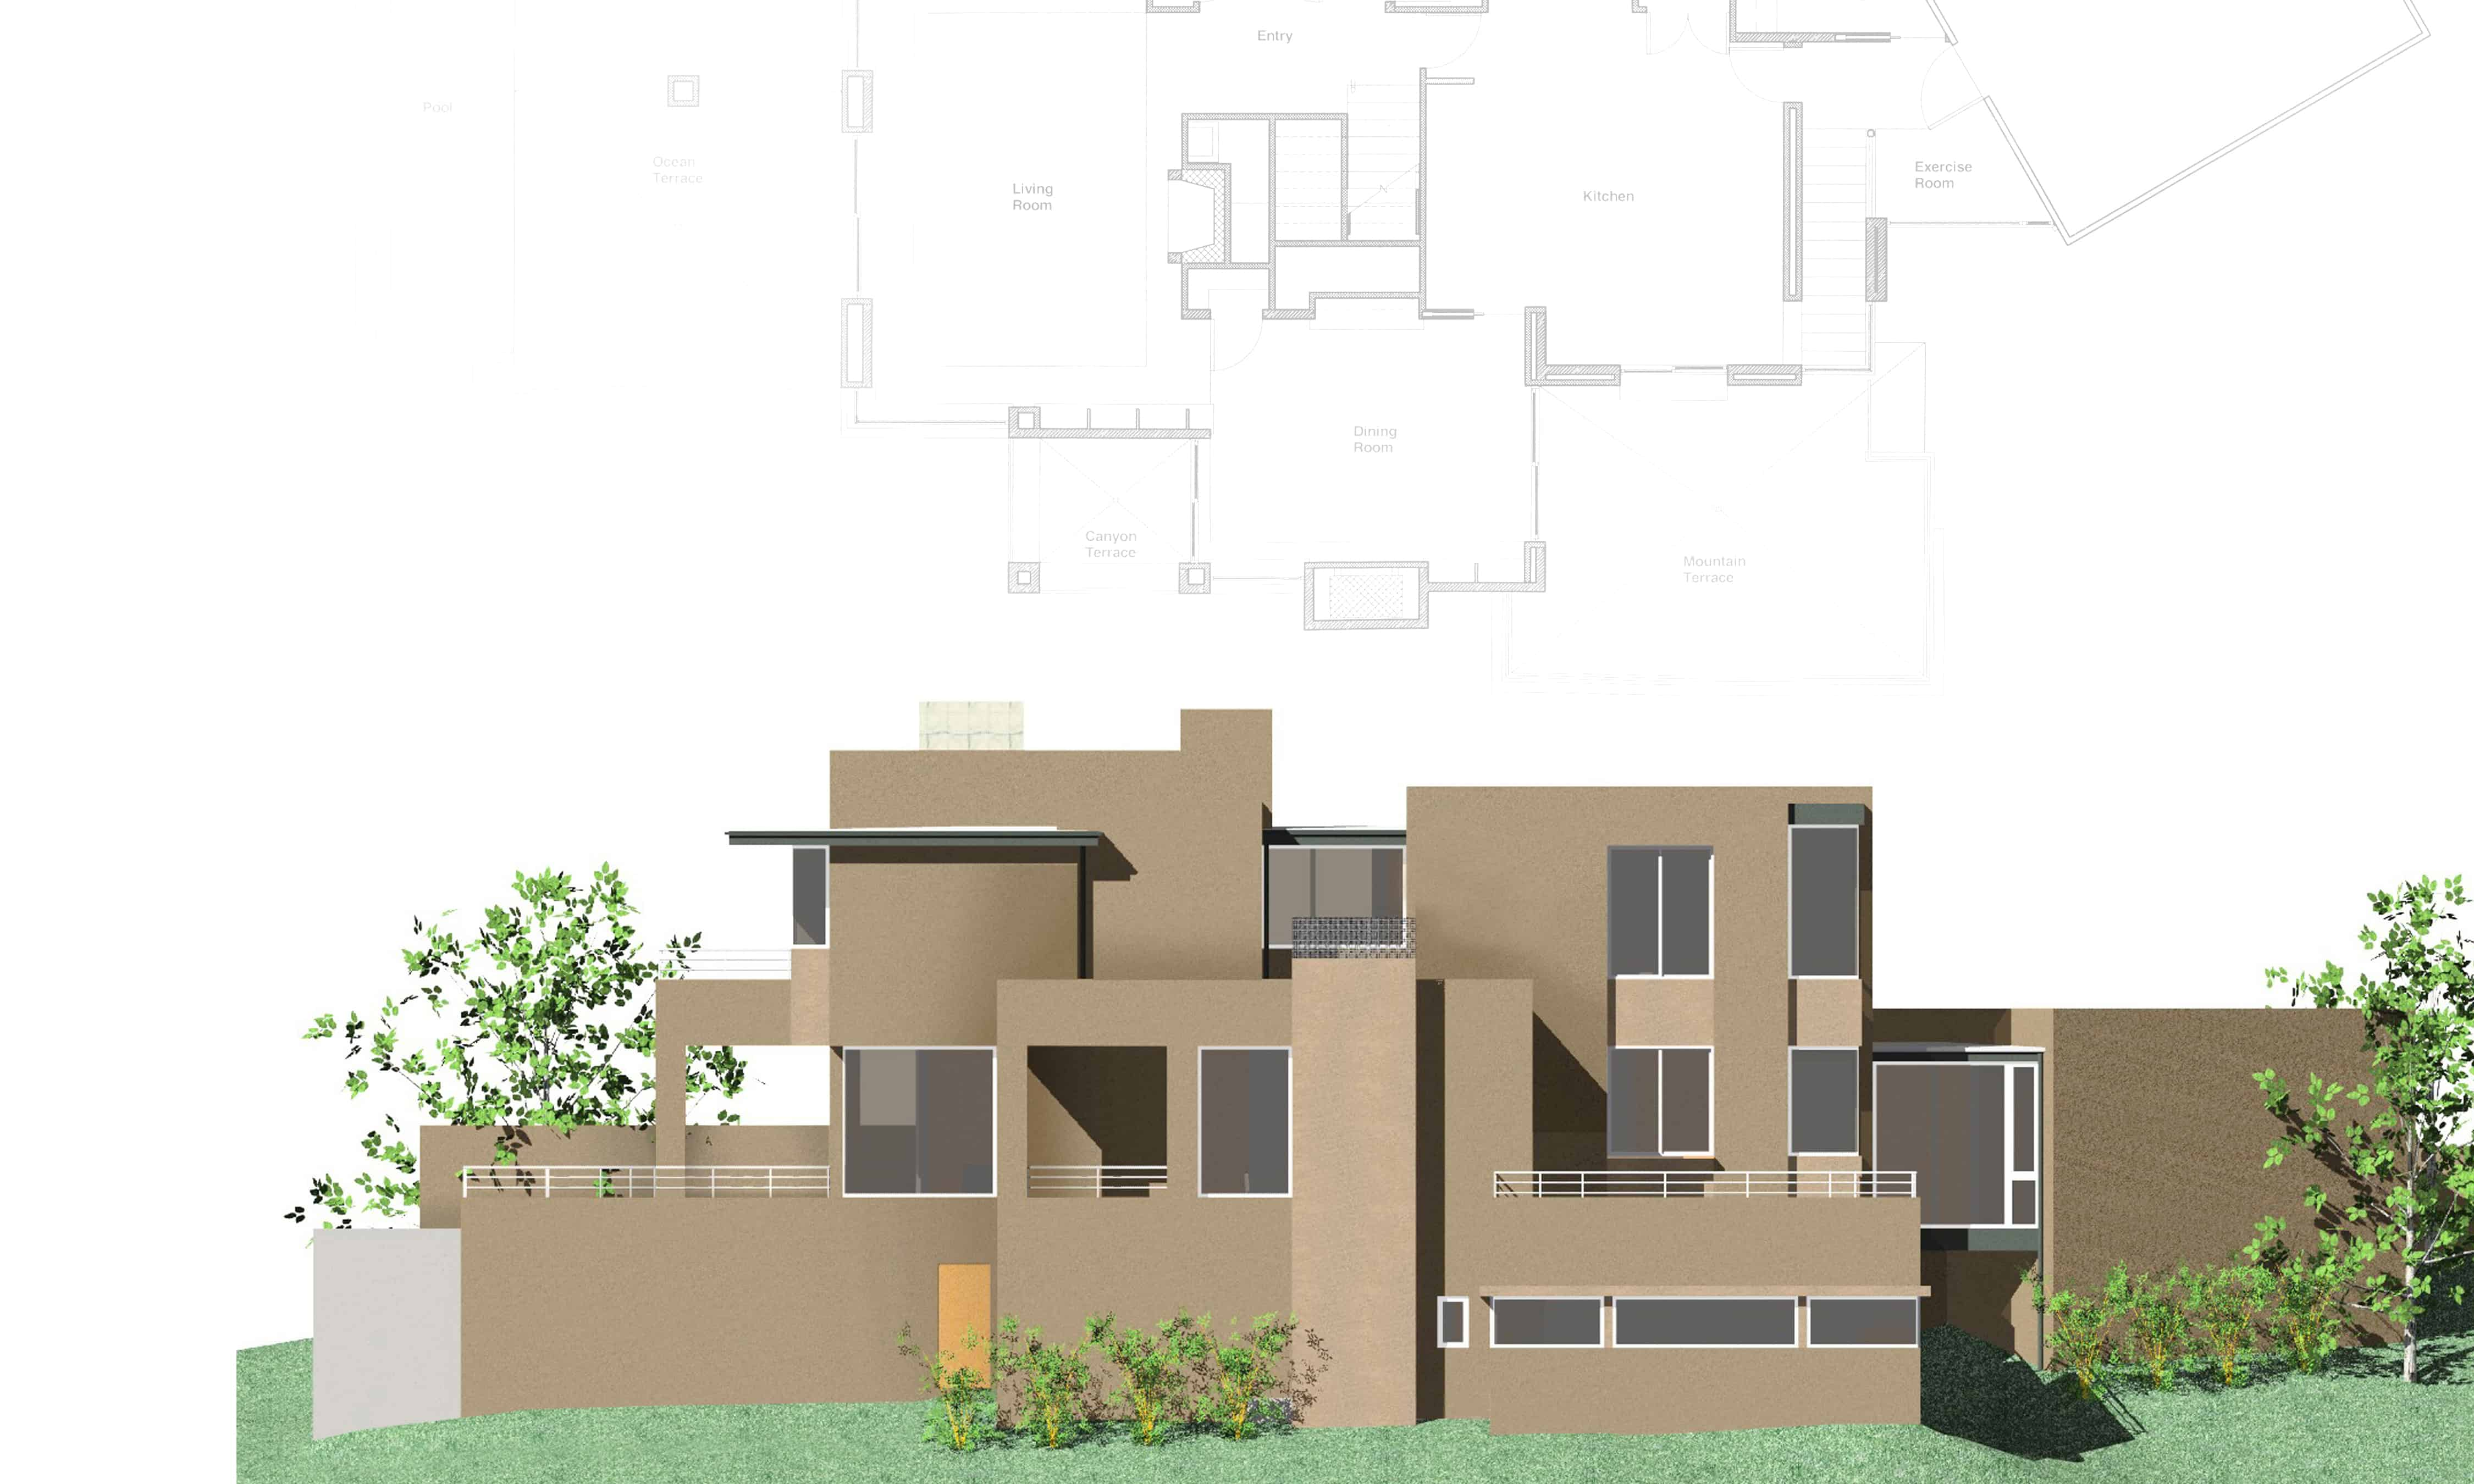 0315_Riviera_Elevation – Plan